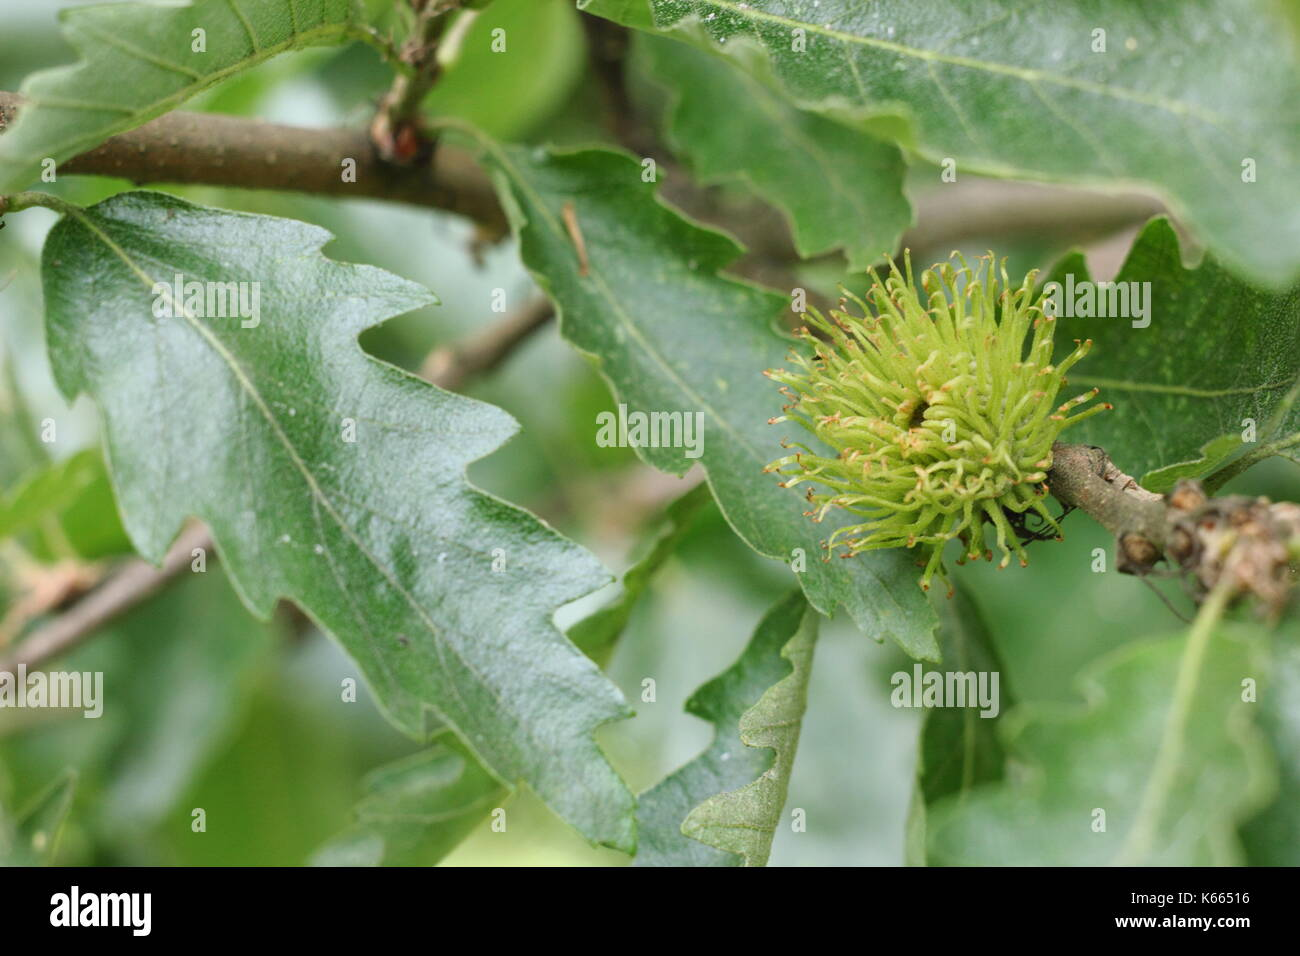 Turkey Oak tree (Quercus cerris), displaying foliage and developing fruit in summer (July), UK - Stock Image